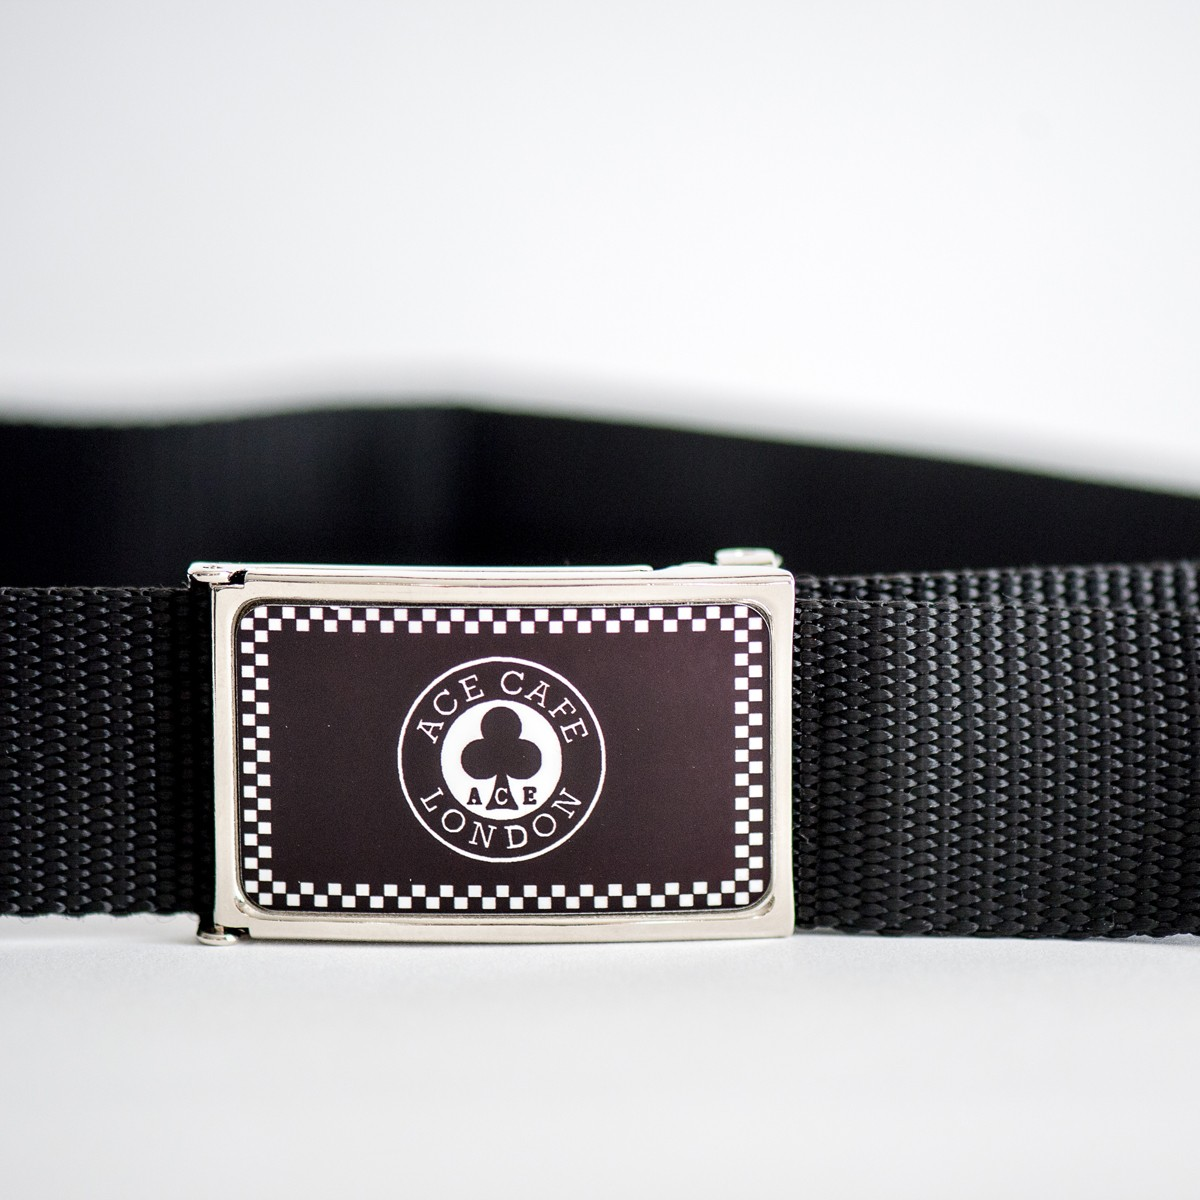 Ace Cafe London Belt